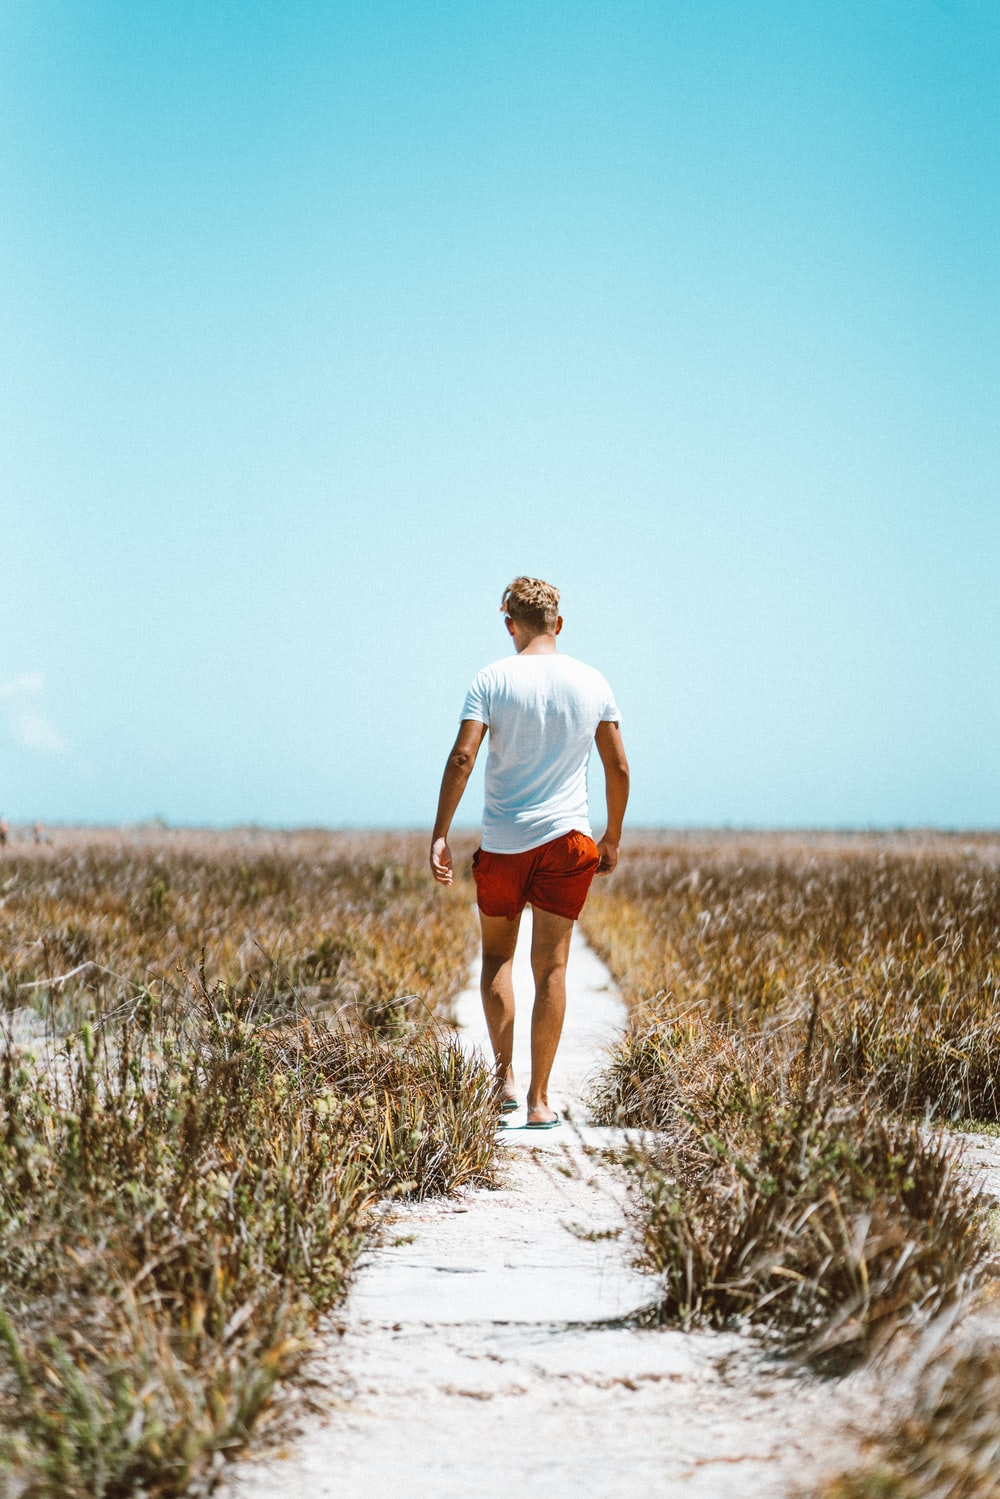 man in white shirt and red shorts walking on white sand between grasses